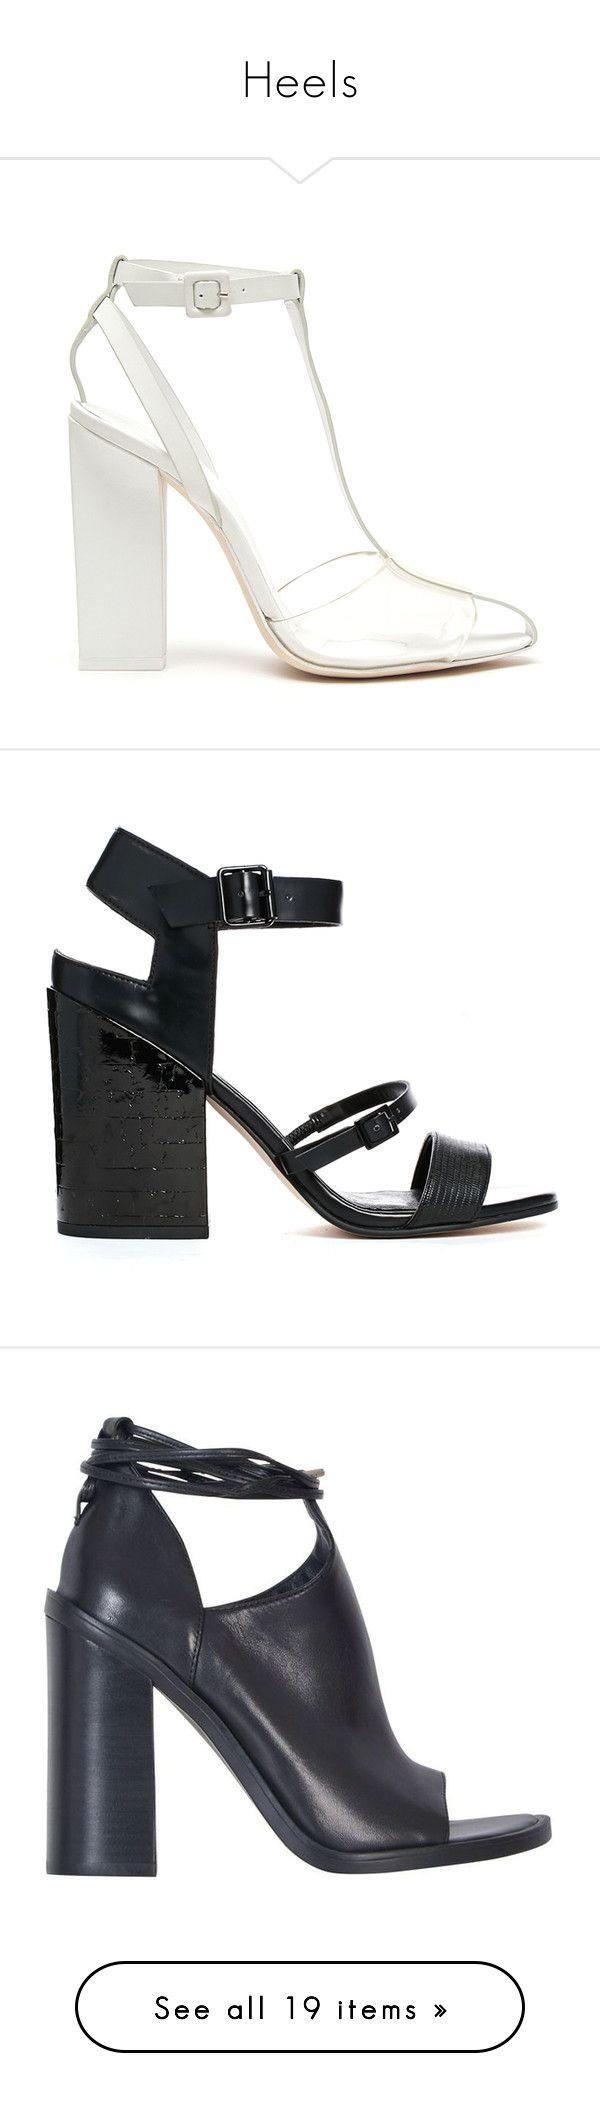 """""""Heels"""" by justonegirlwithdreams ❤ liked on Polyvore featuring shoes, sandals, heels, shoes heels, alexander wang sandals, clear plastic sandals, plastic sandals, high heeled footwear, white high heel sandals and black"""